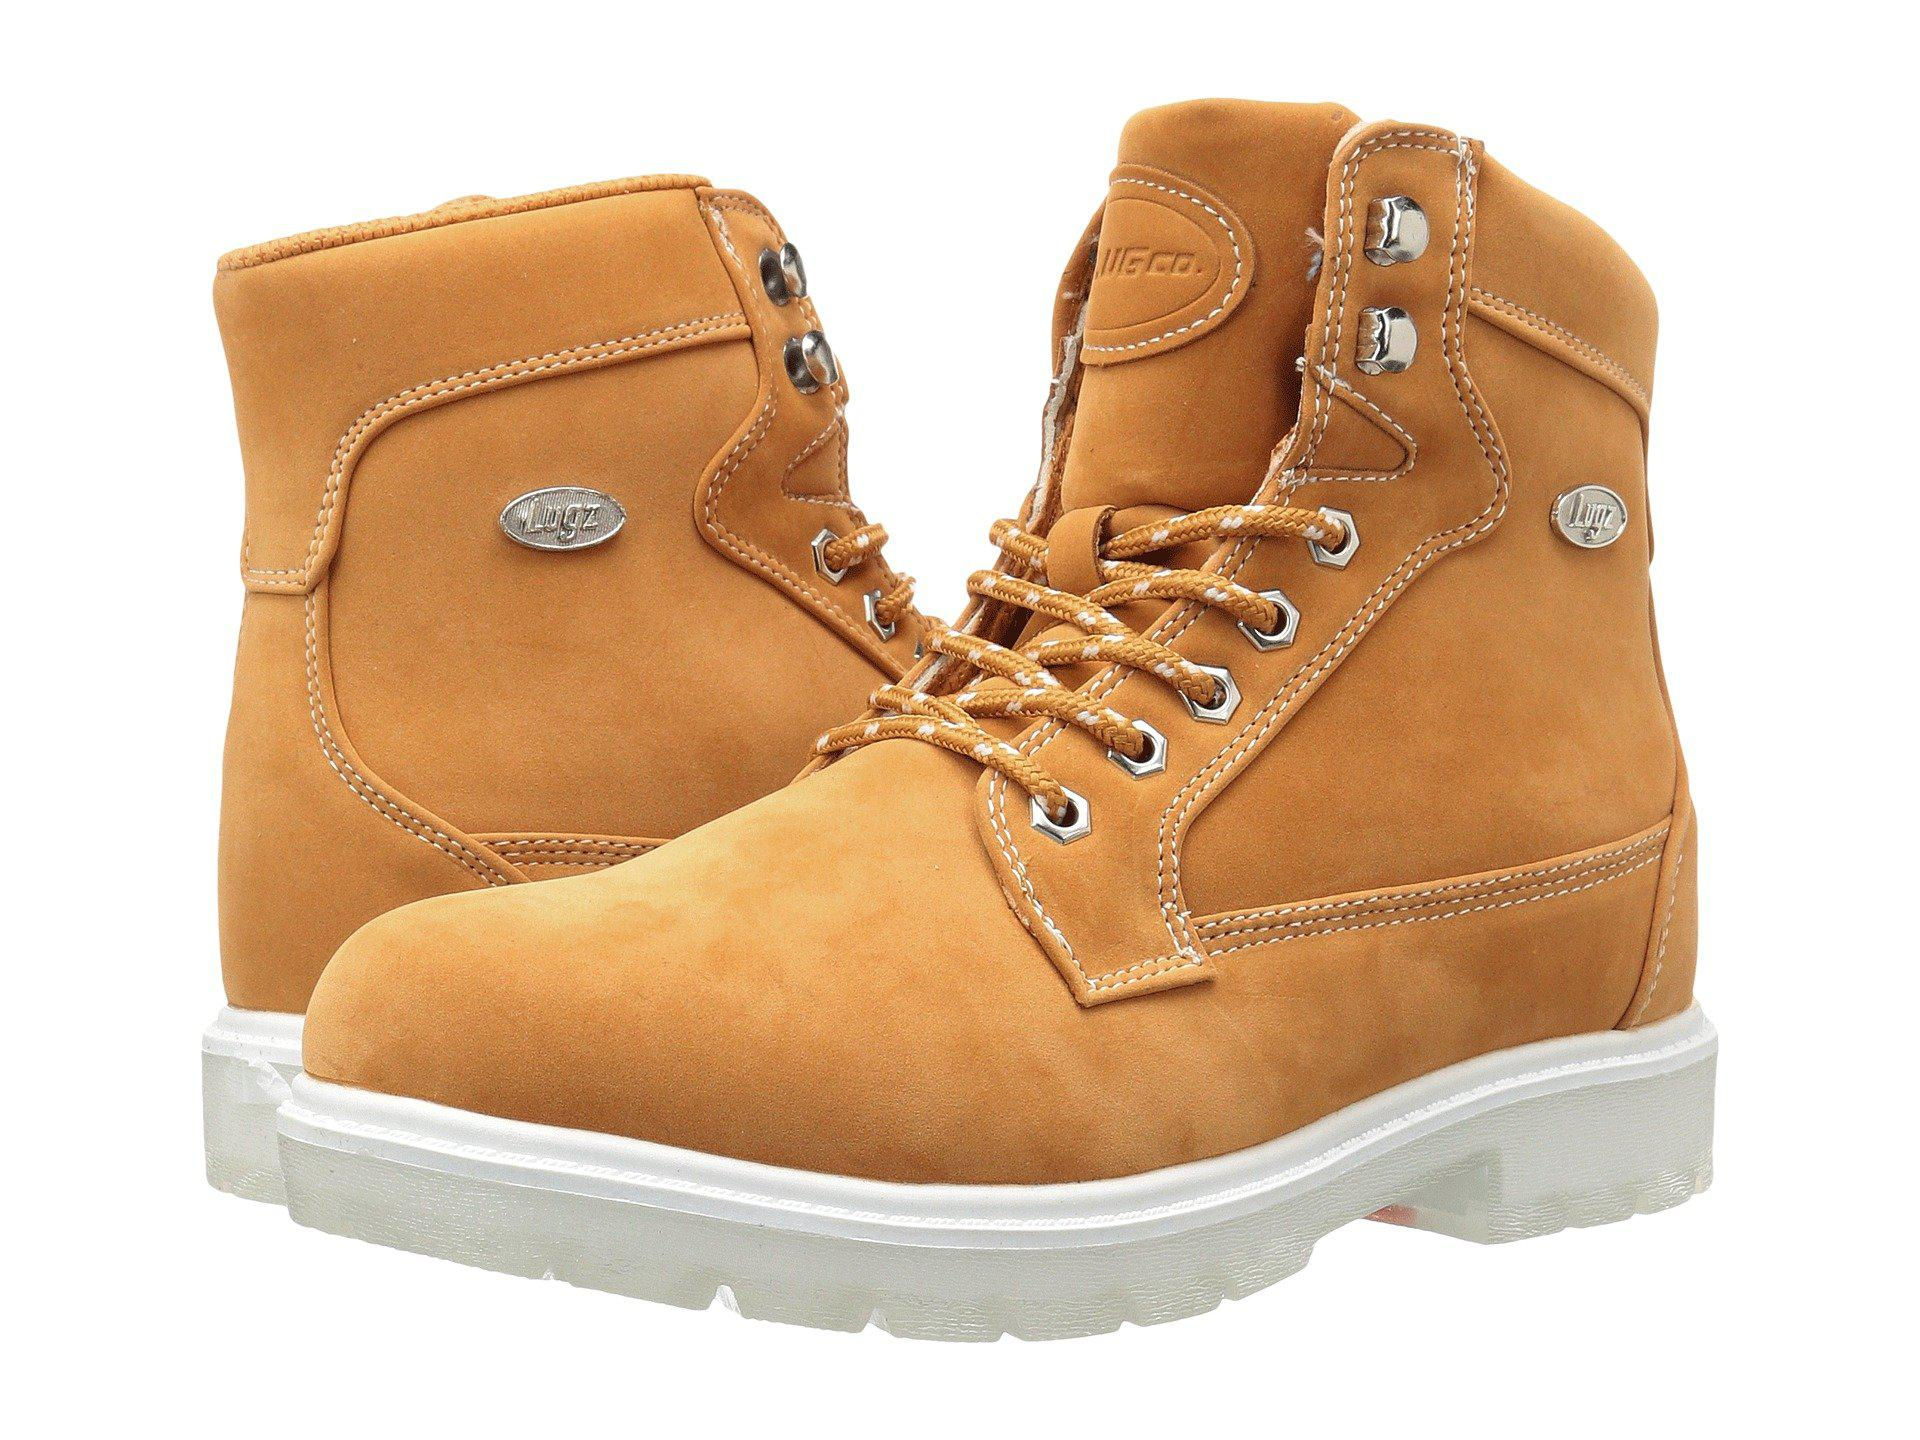 e3395ee040e8 Lyst - Lugz Regiment Hi Tl in Brown for Men